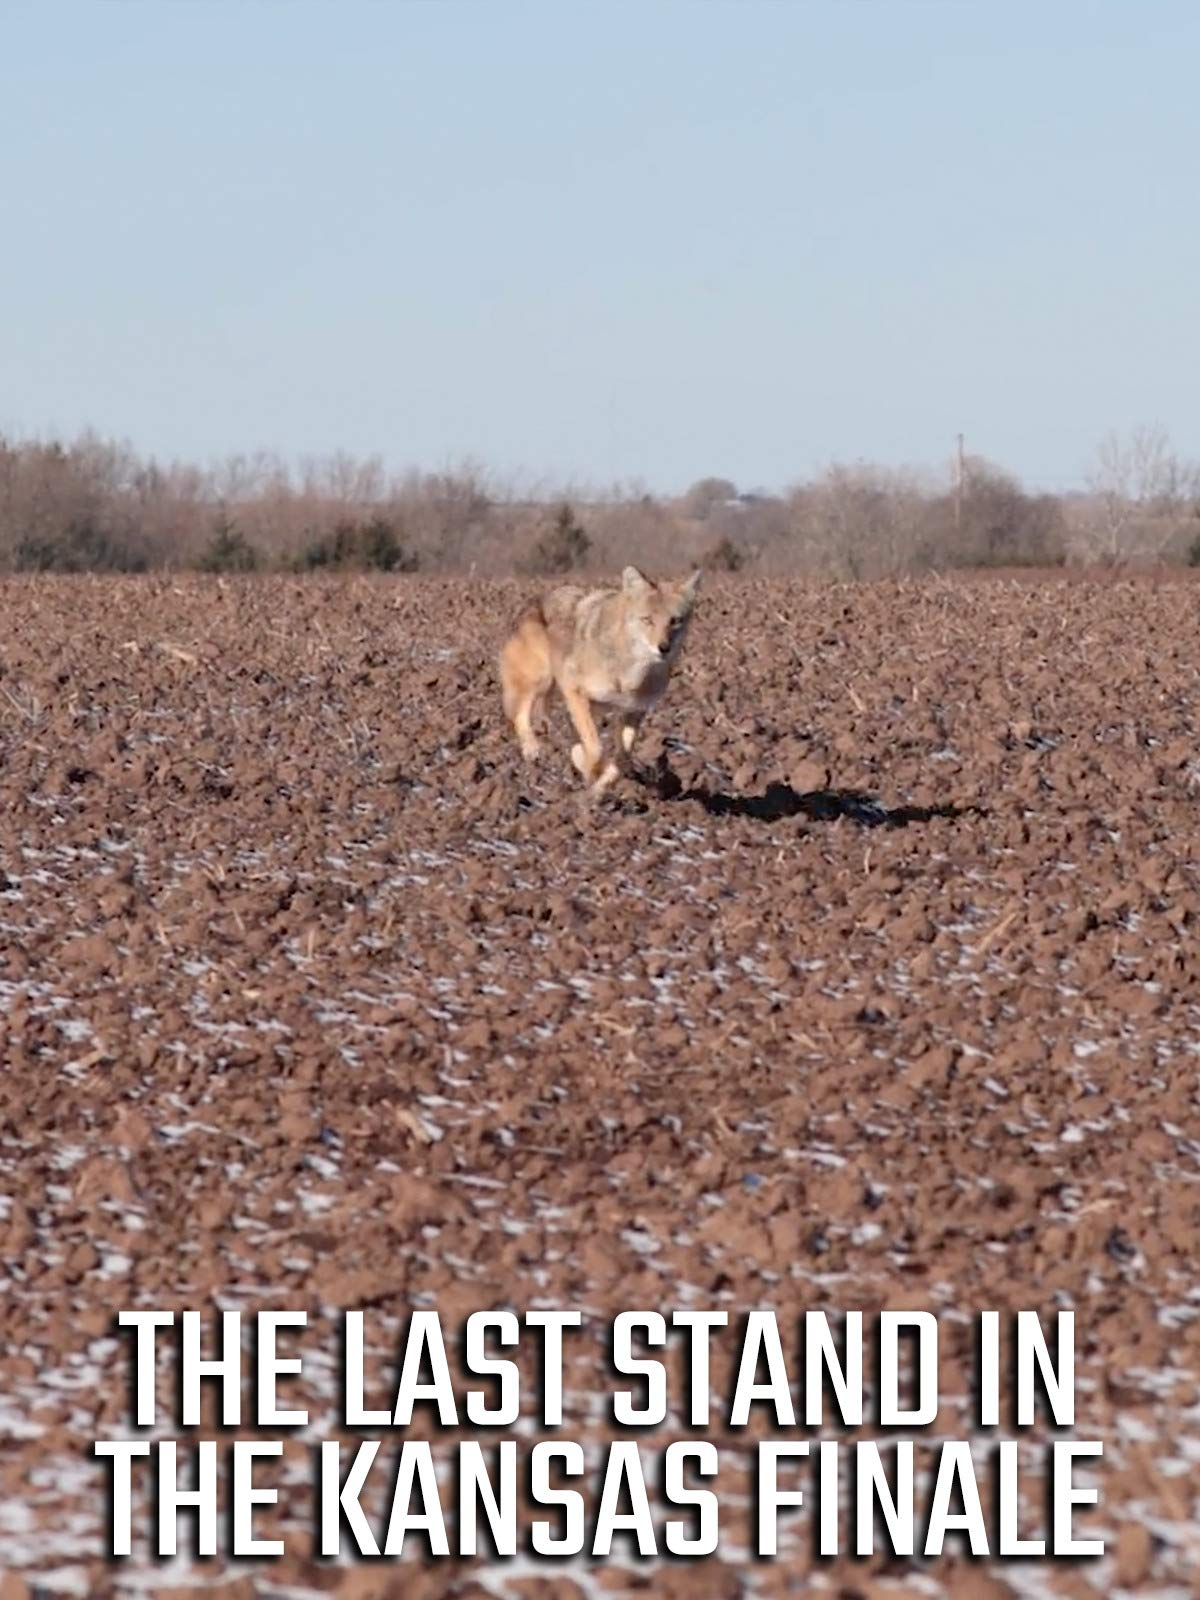 The Last Stand In The Kansas Finale